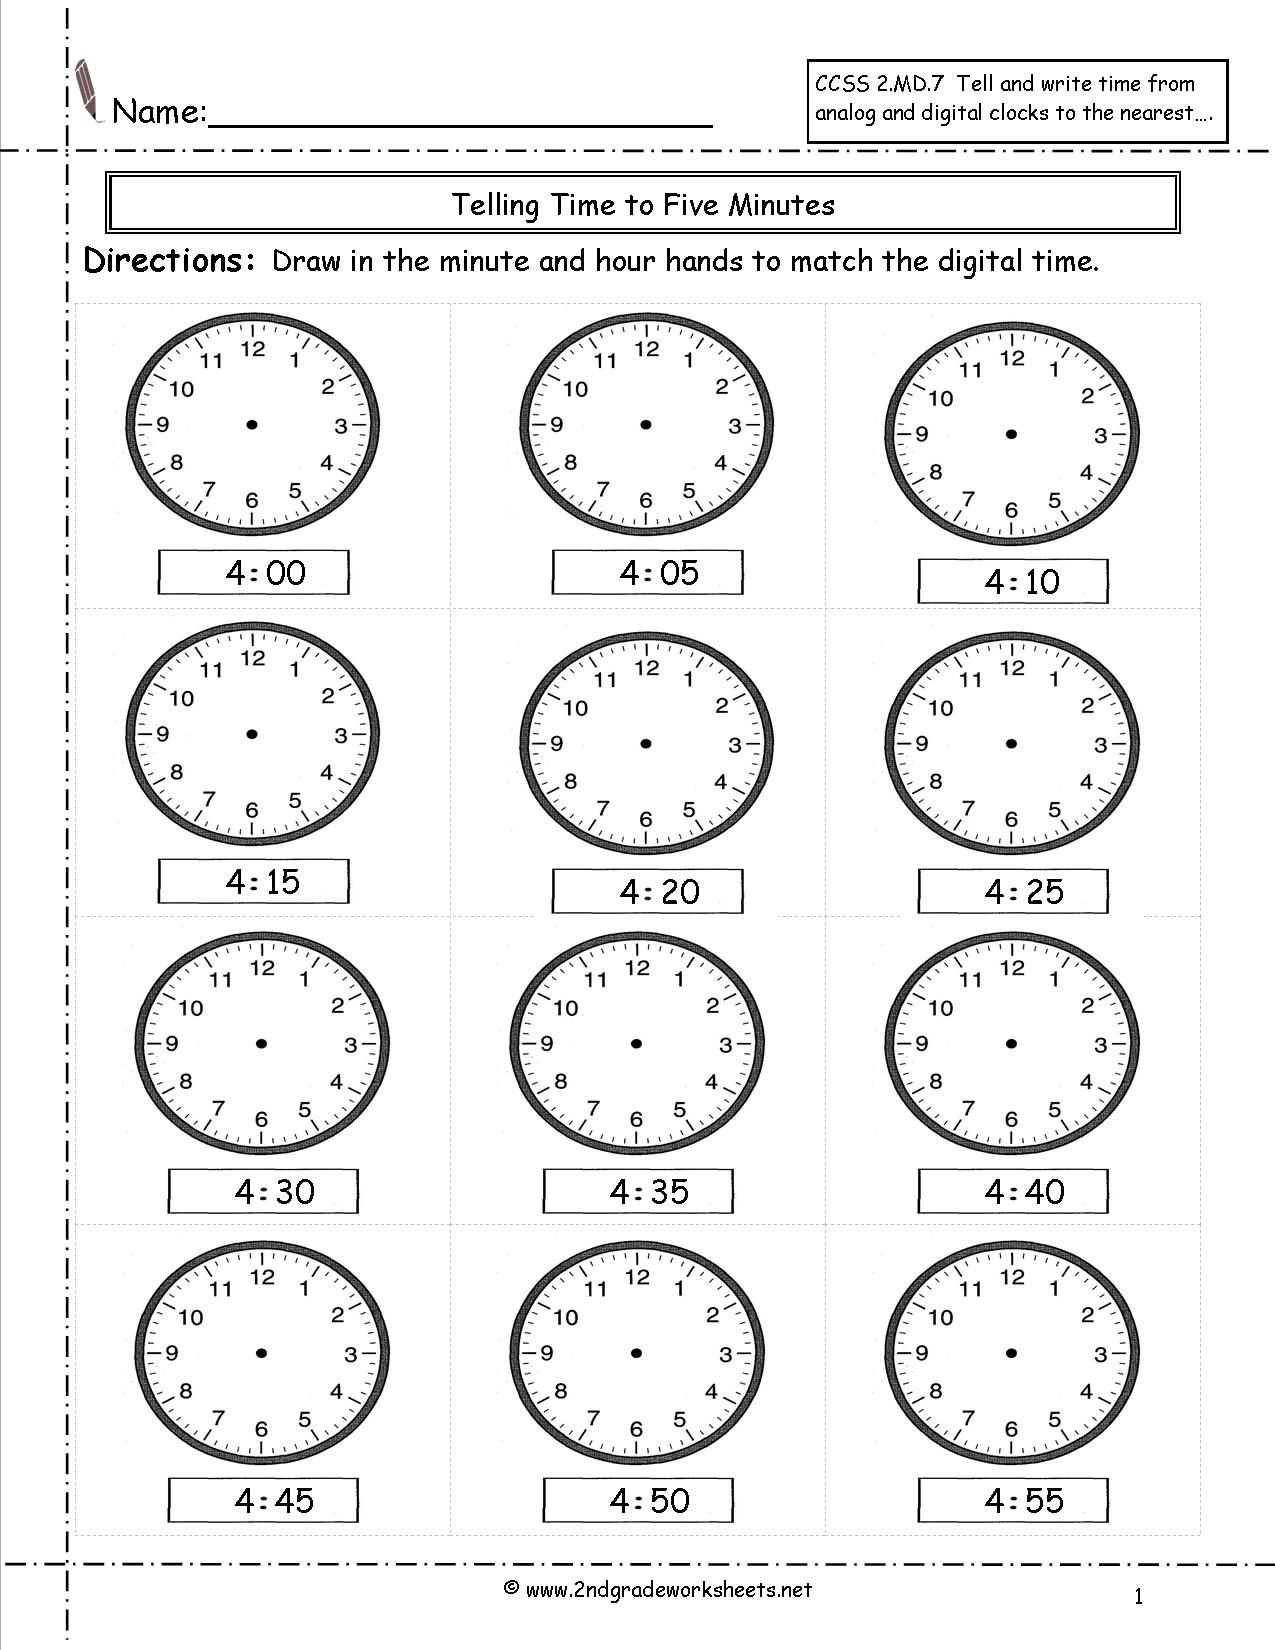 small resolution of Marvellous Telling And Writing Time Worksheets Clock To The Hour  Tellingtimedrawhandsfourtofourfift ~ …   Telling time worksheets